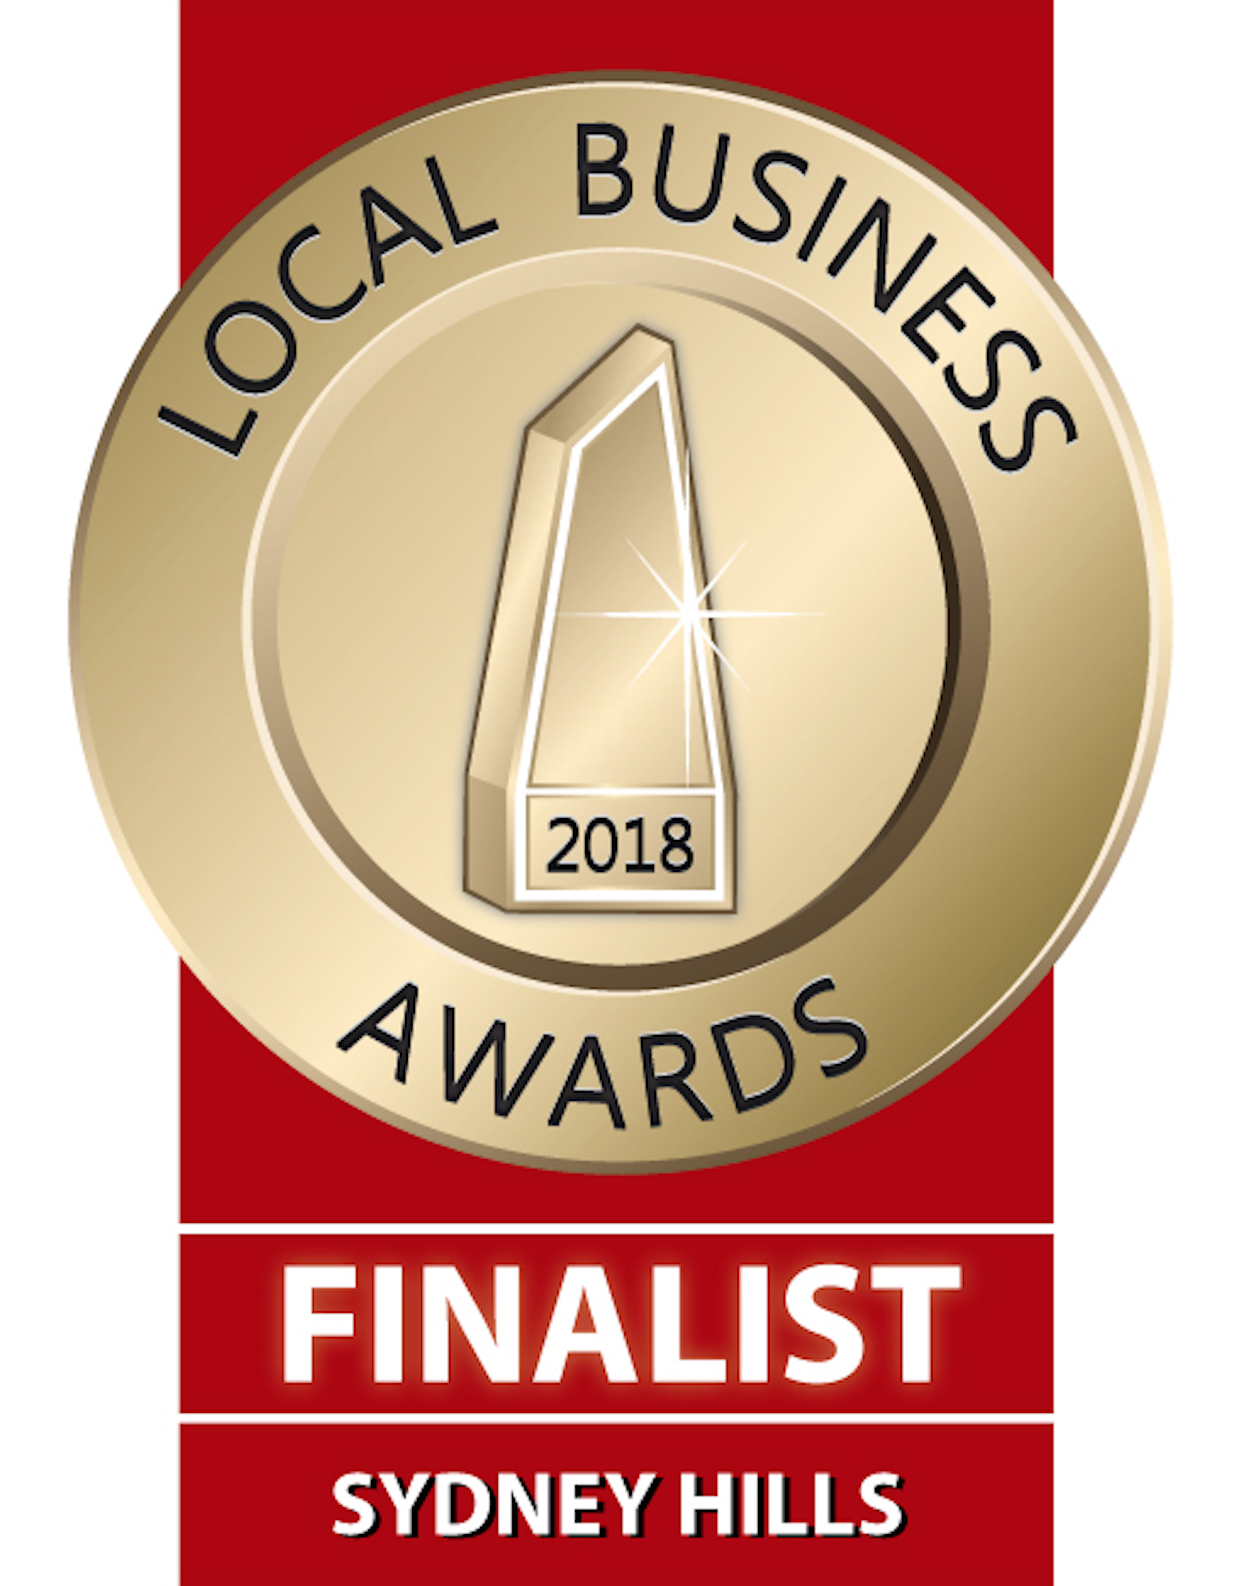 HSM - Local Business Awards, 2018